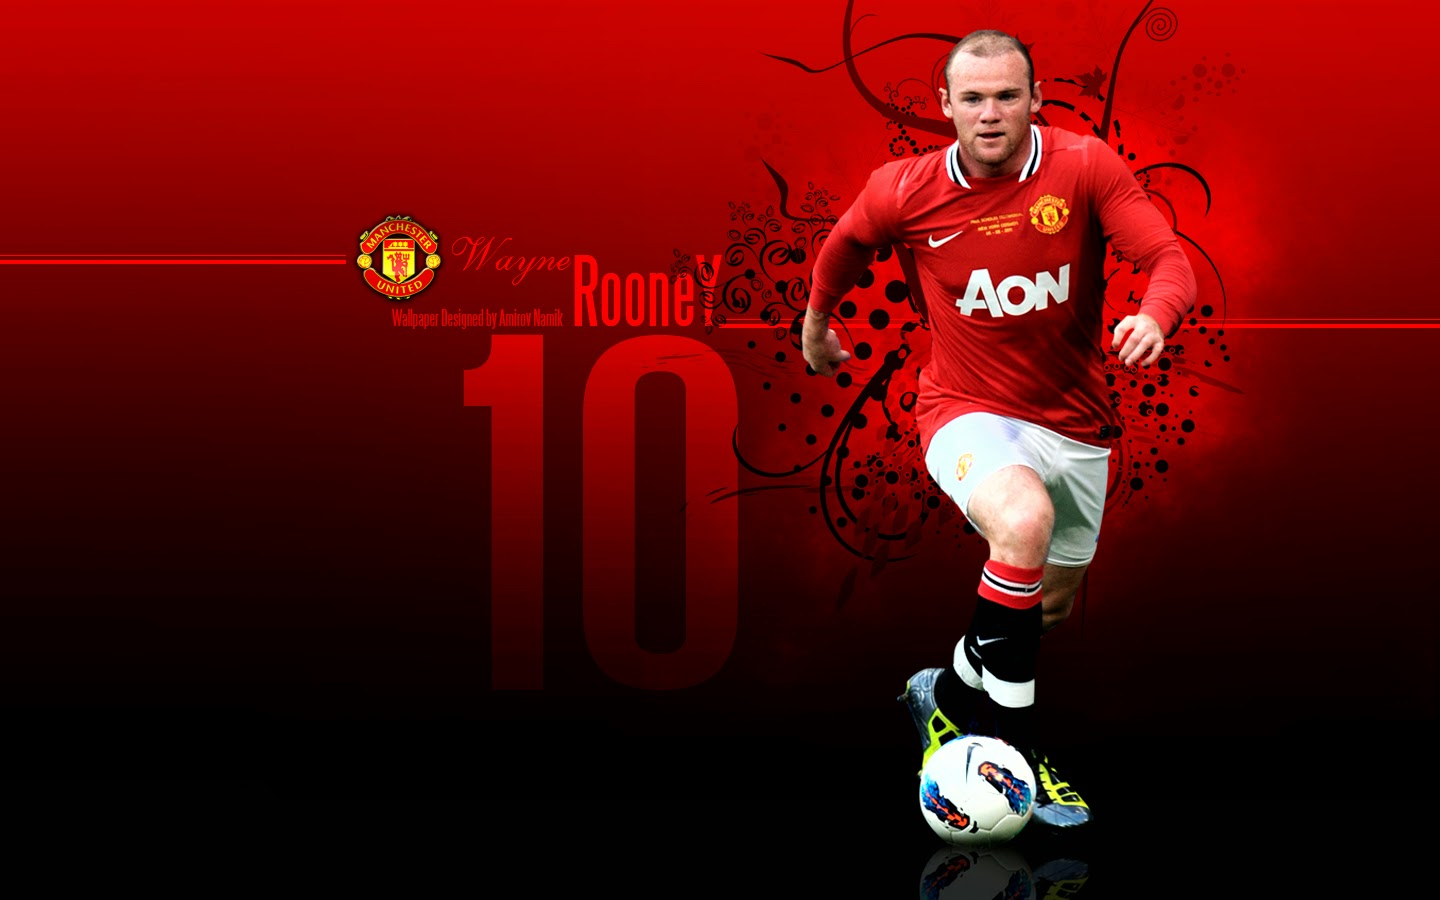 Wayne Rooney Wallpapers 2014